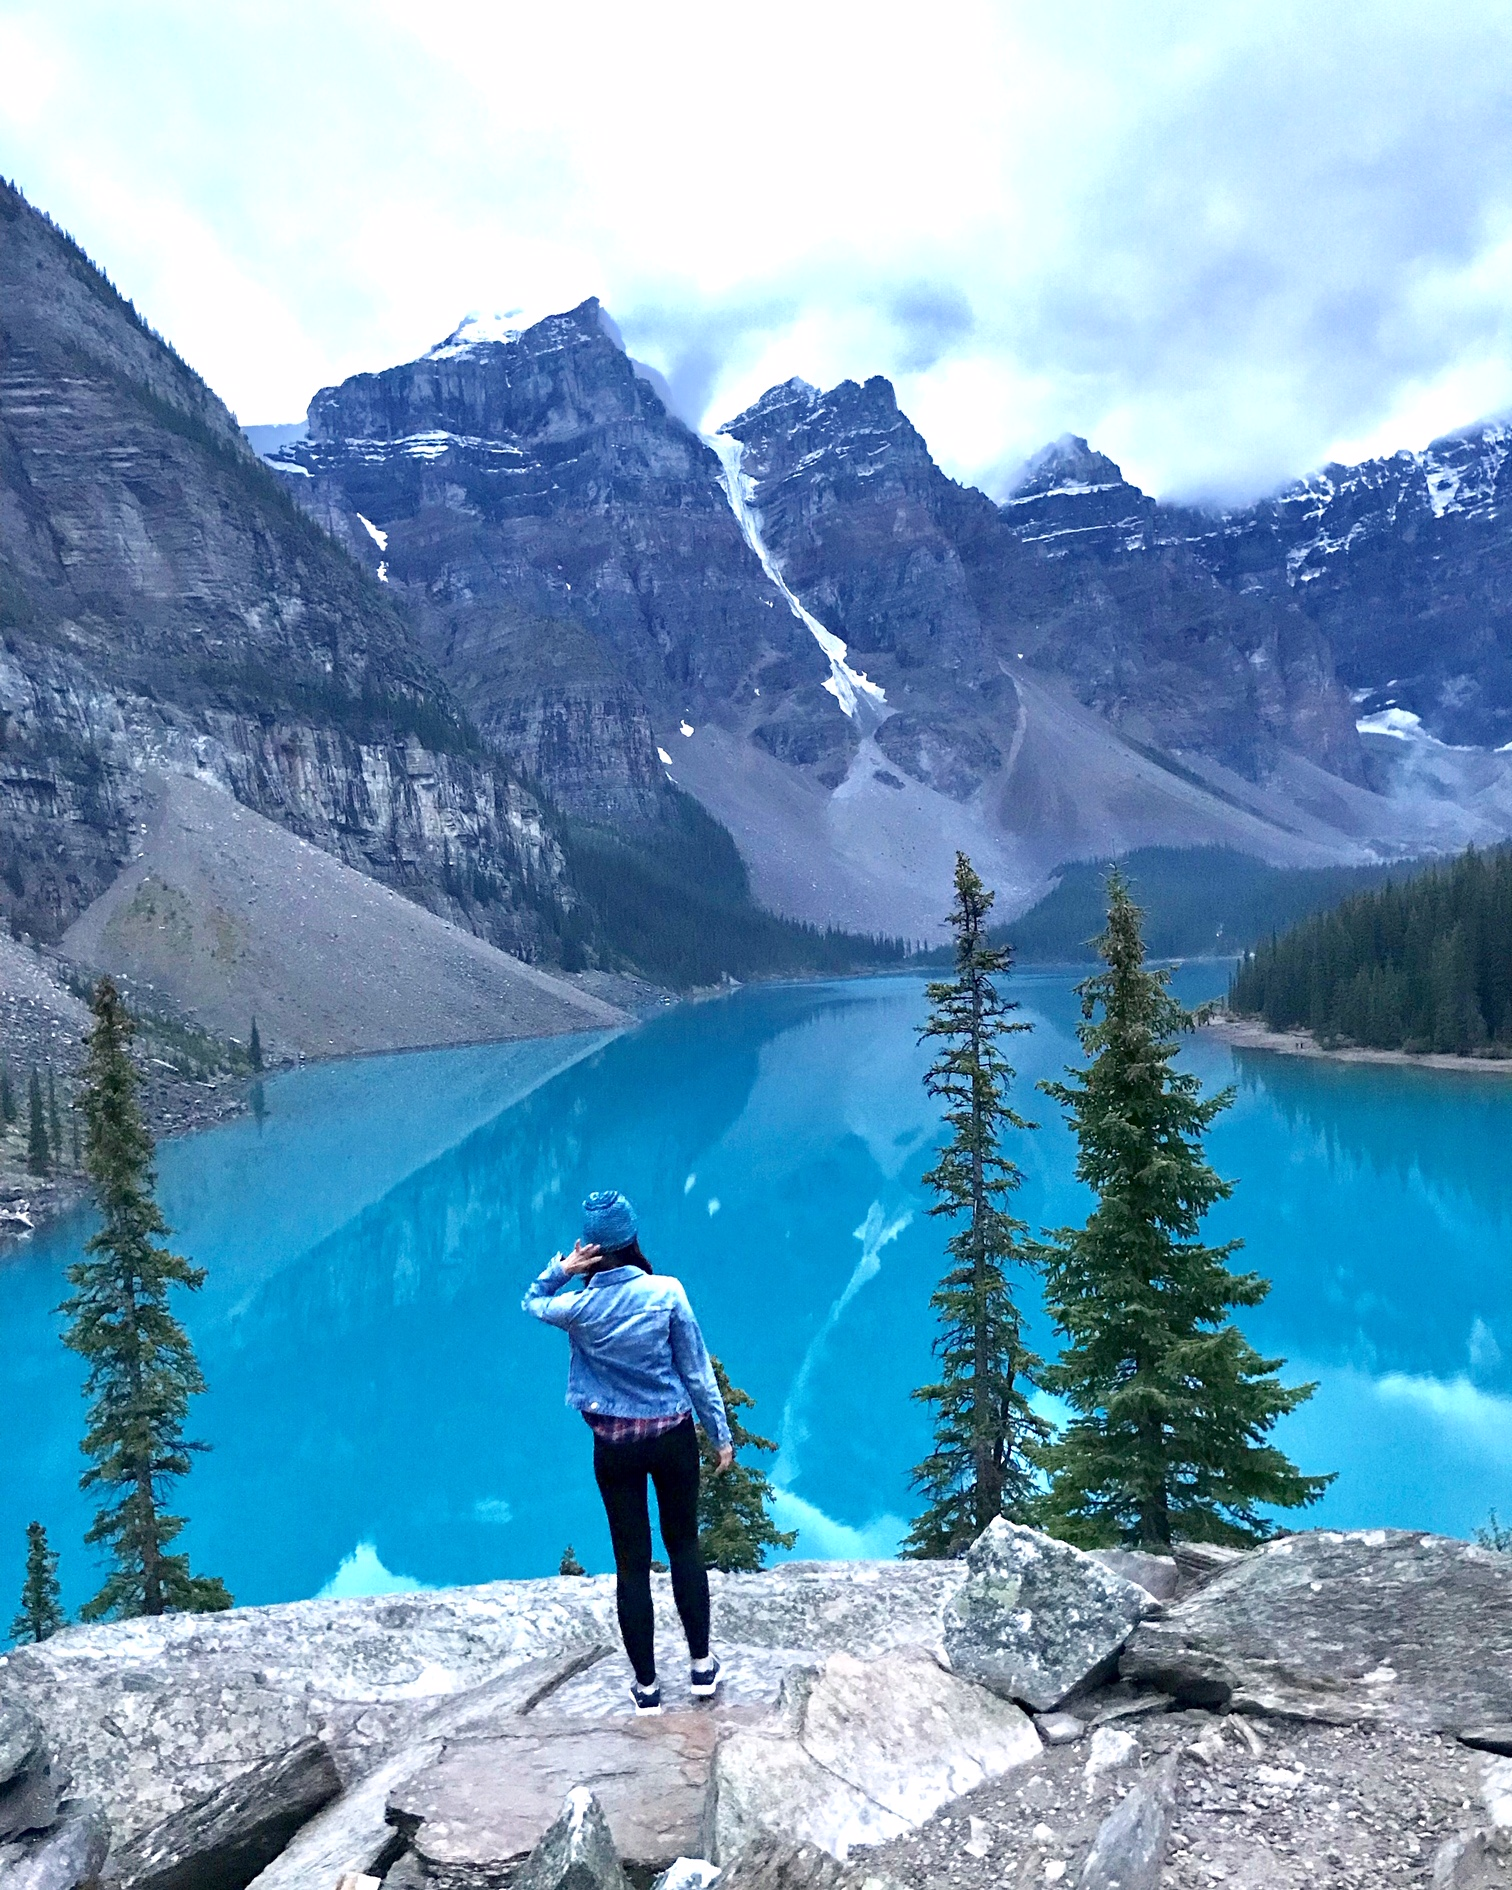 Moraine Lake: This view requires a very small hike to the top of the mountain to the left as you enter the parking lot.